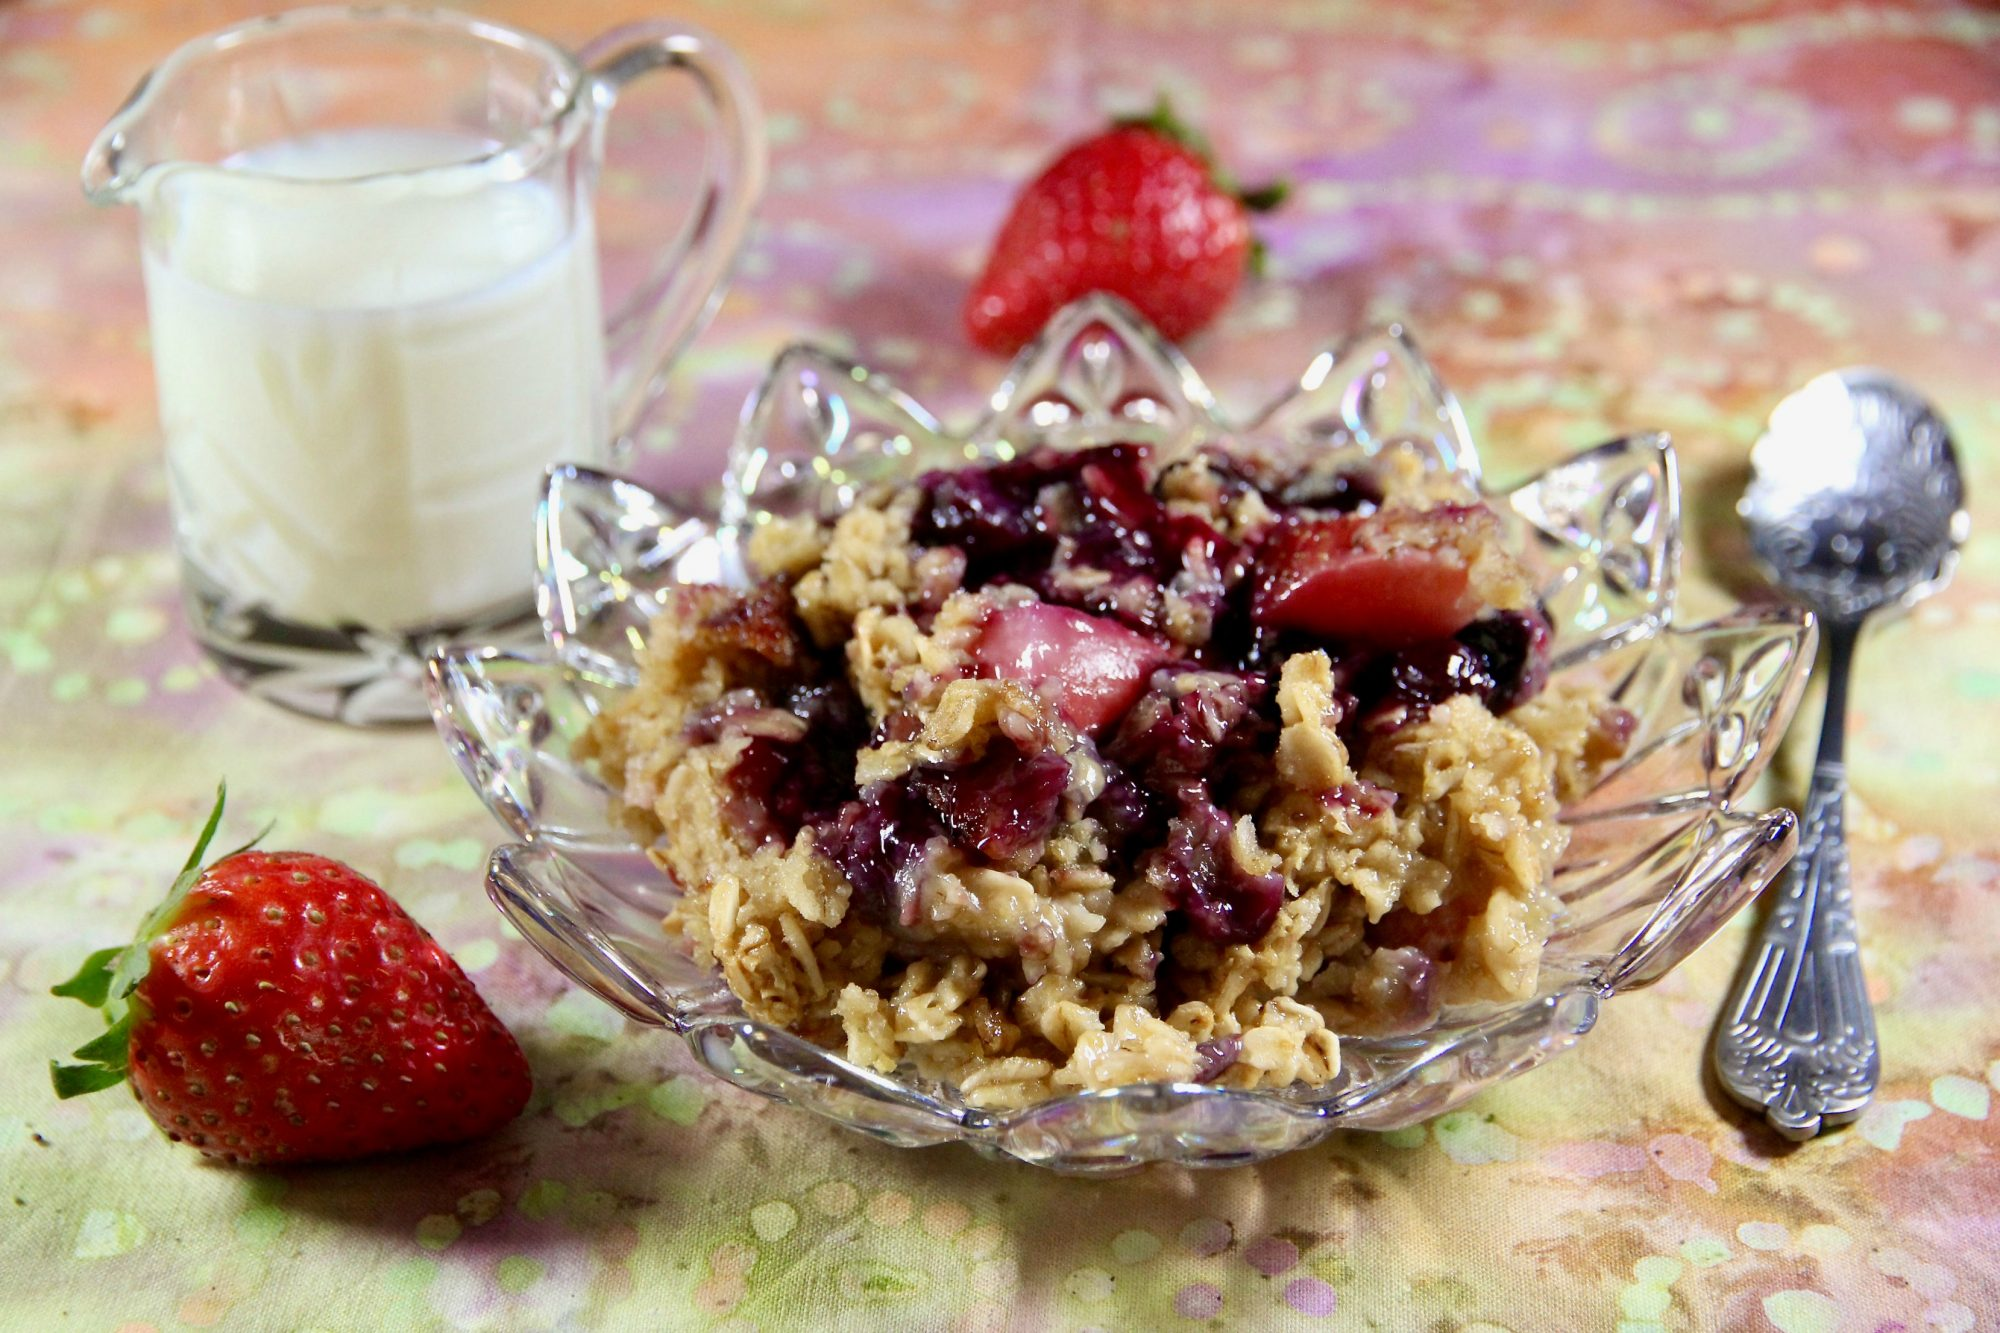 Amish Blackberry and Strawberry Baked Oatmeal